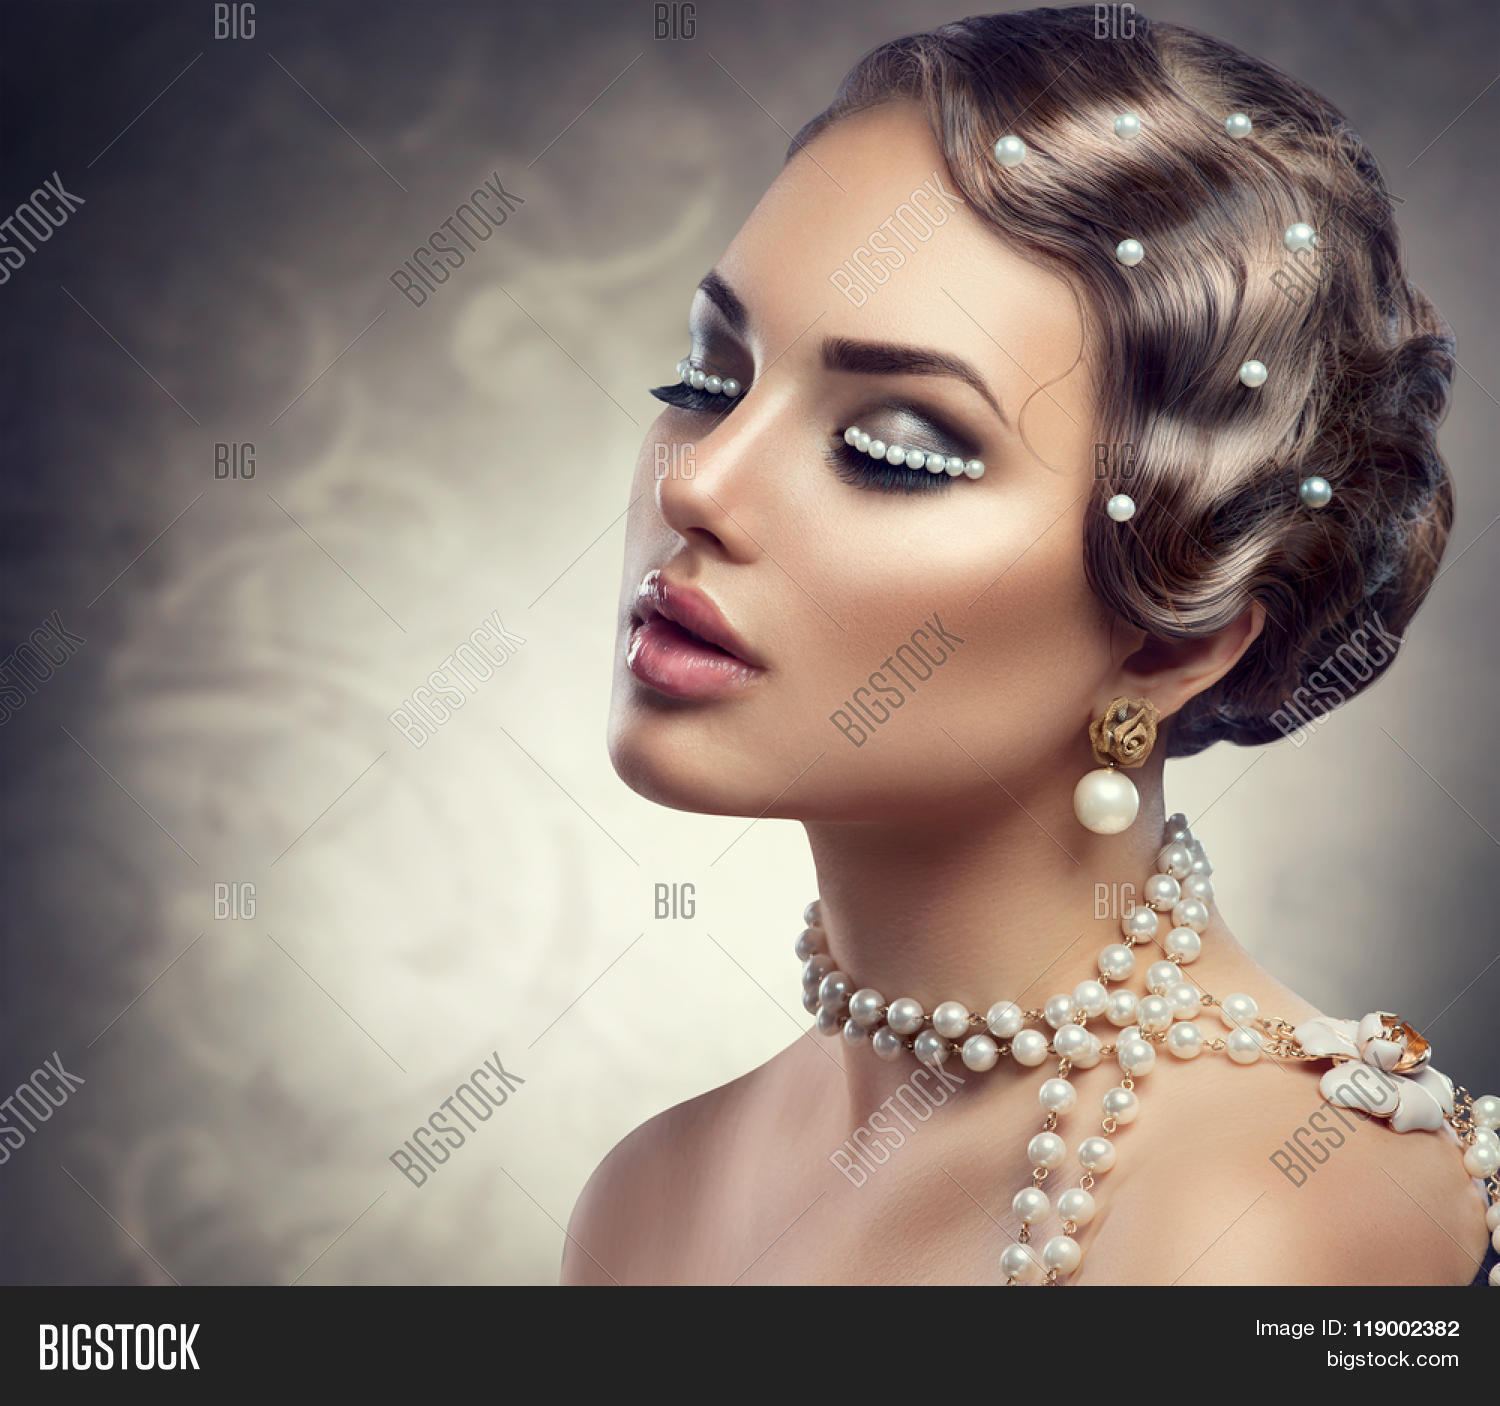 Pearl Makeup >> Retro Styled Makeup Image Photo Free Trial Bigstock